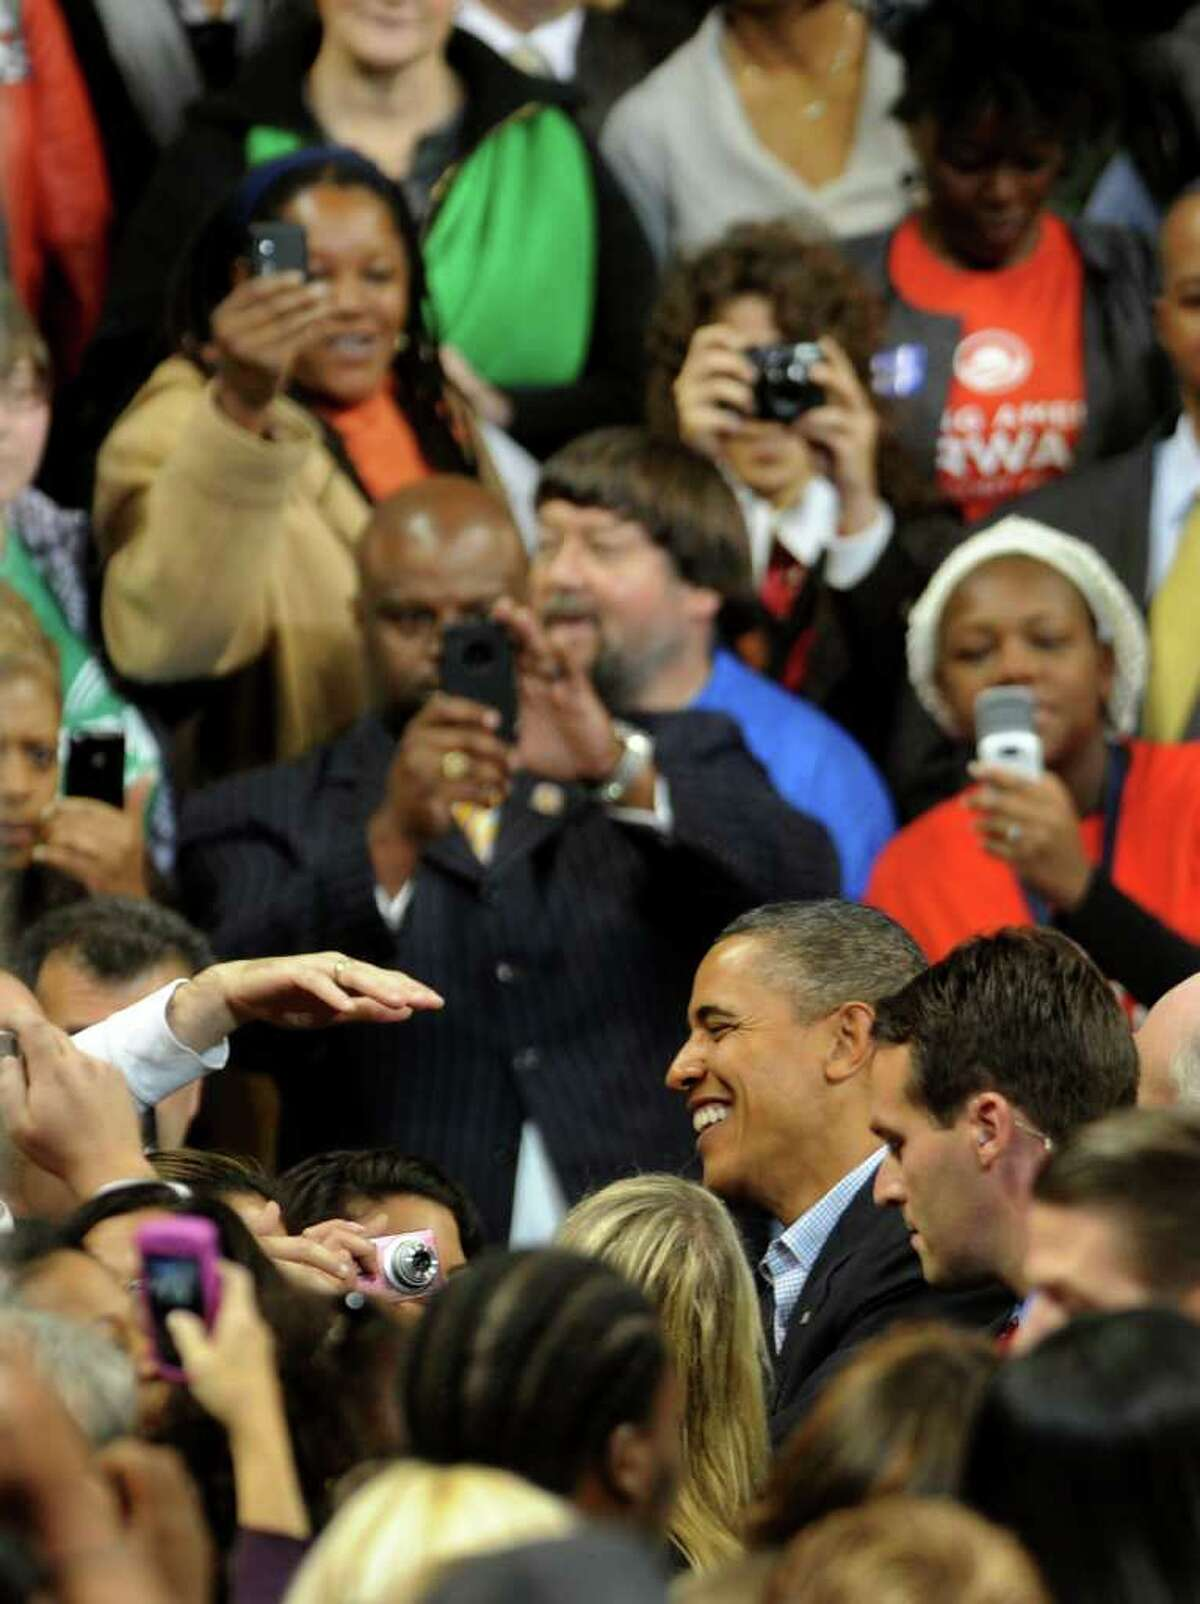 President Obama, at lower right, greets people in the crowd after speaking at the Arena at Harbor Yard in downtown Bridgeport, Conn. on Saturday October 30, 2010.